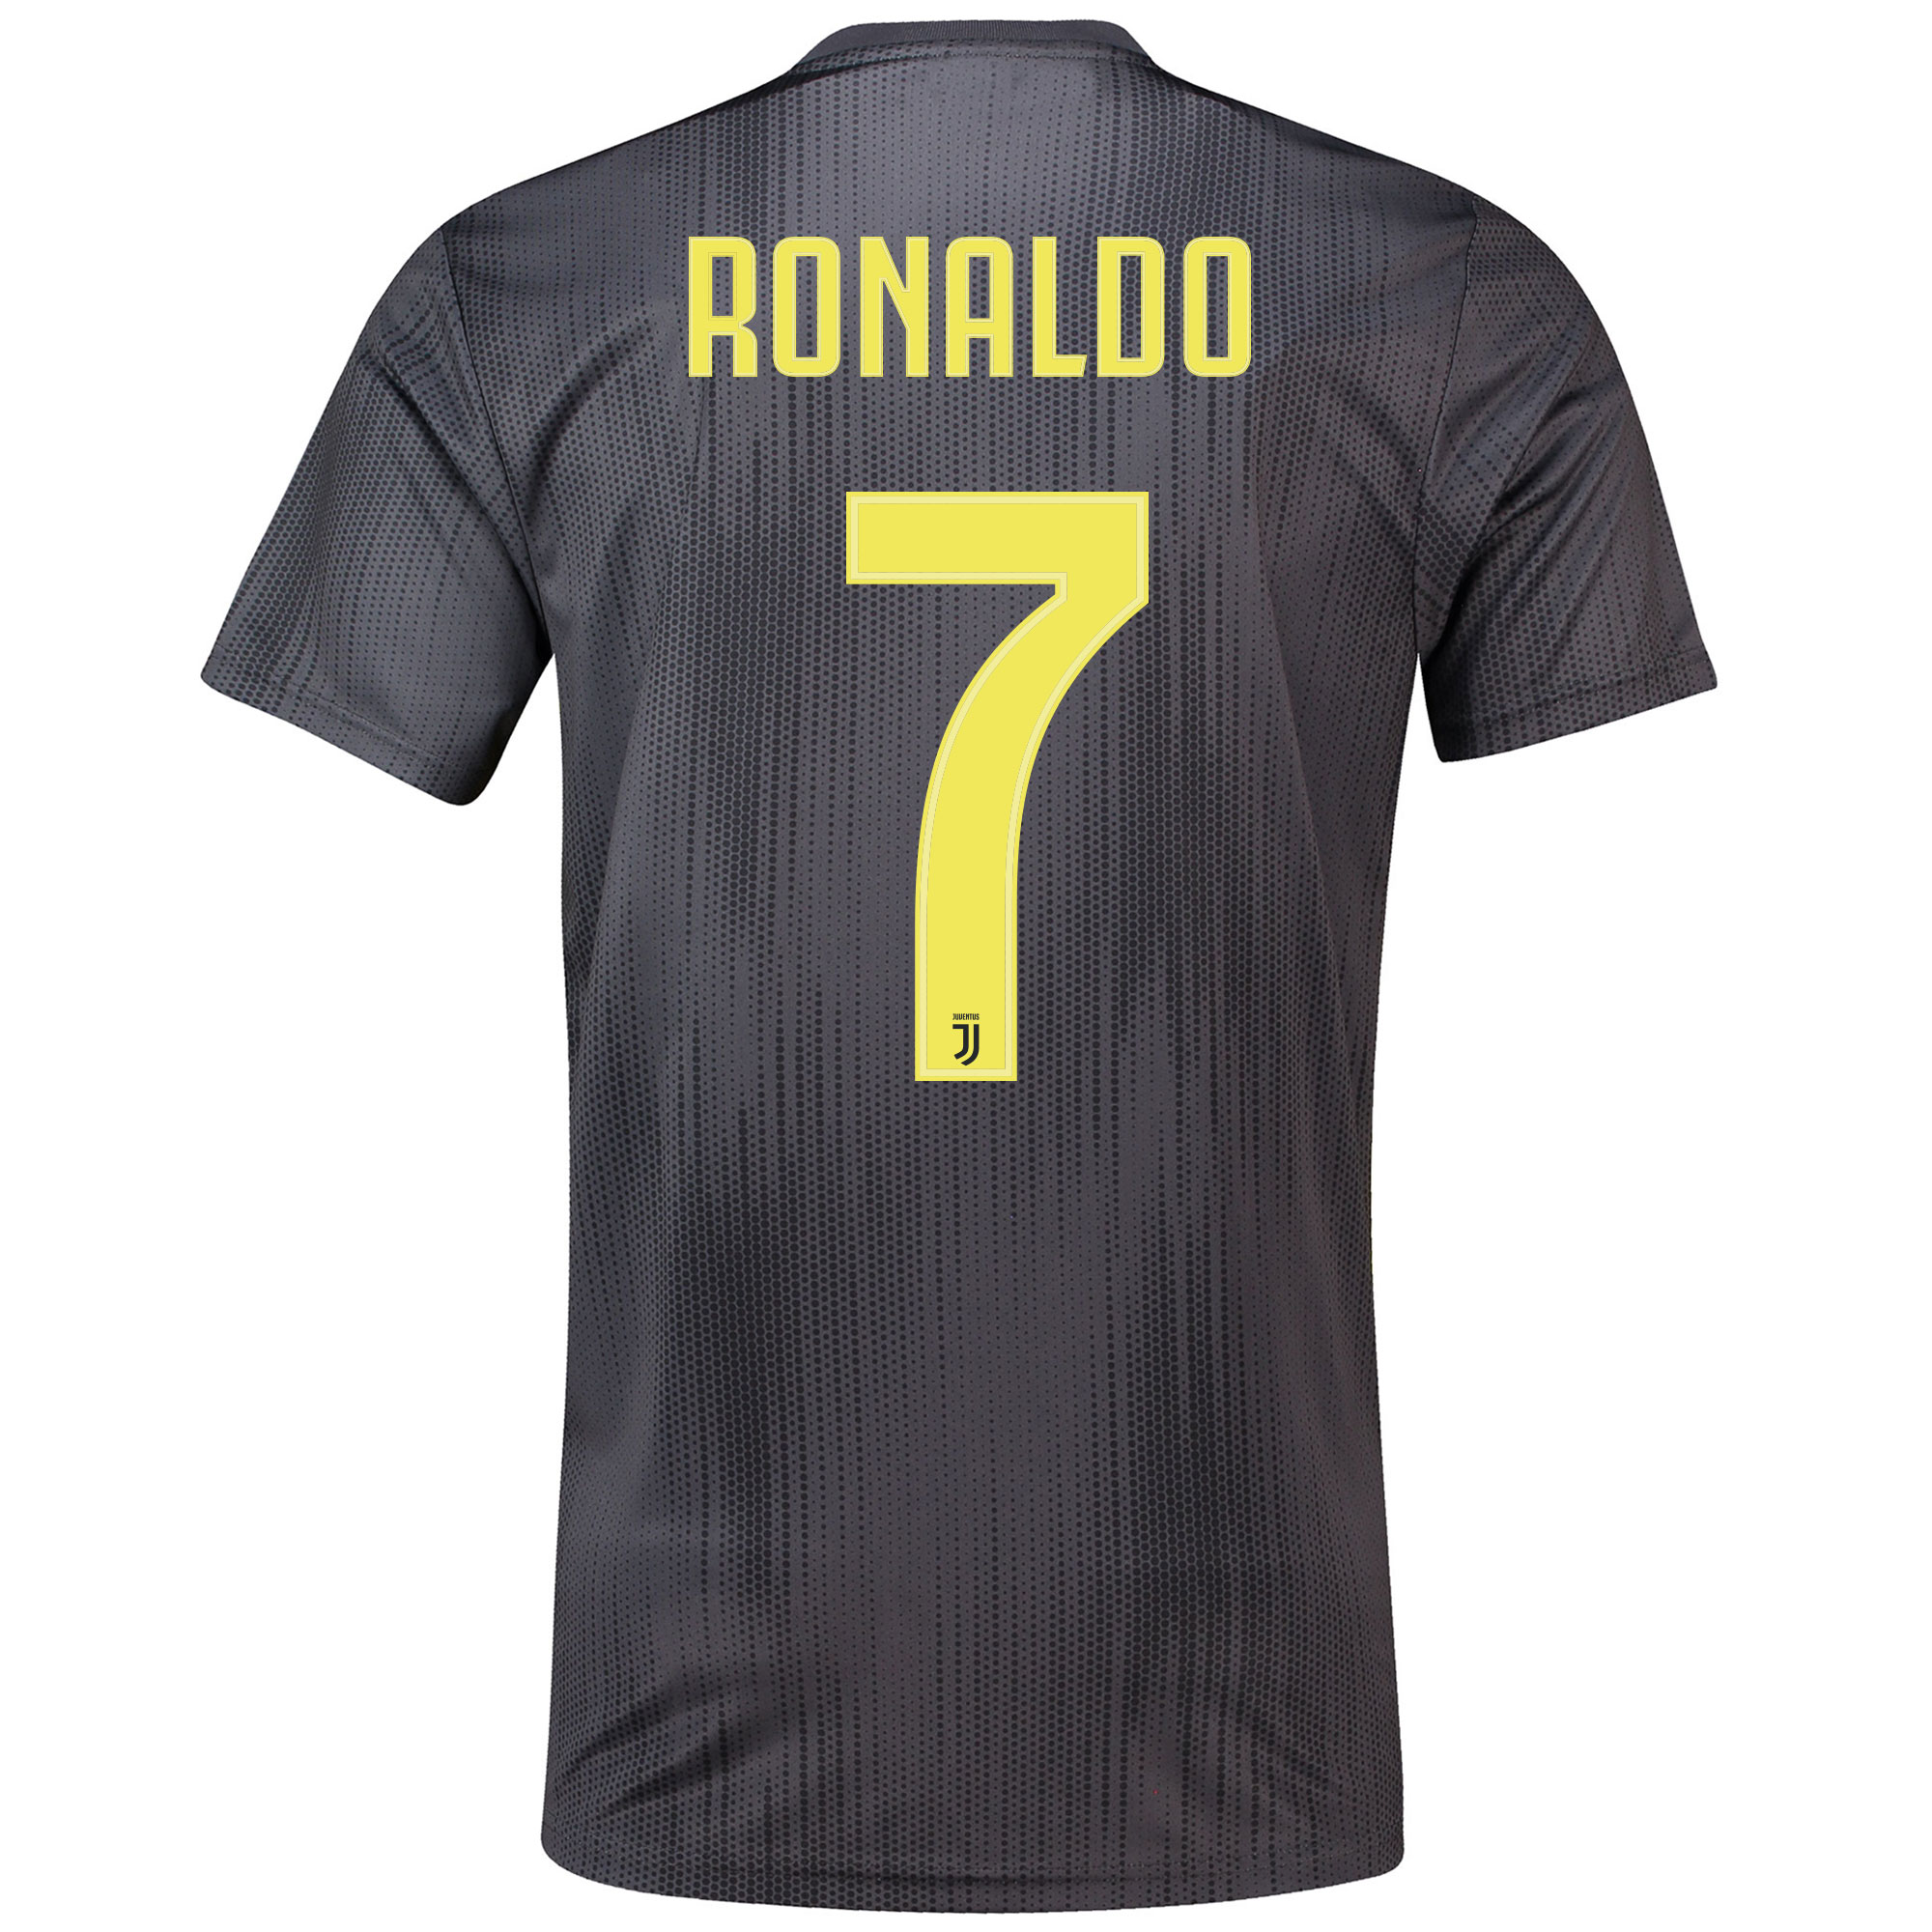 61427224757 ... 2018-19 Adidas Away Kit · Click to enlarge image  juventus 18 19 adidas third kit a.jpg · Click to enlarge image  juventus 18 19 adidas third kit b.jpg ...